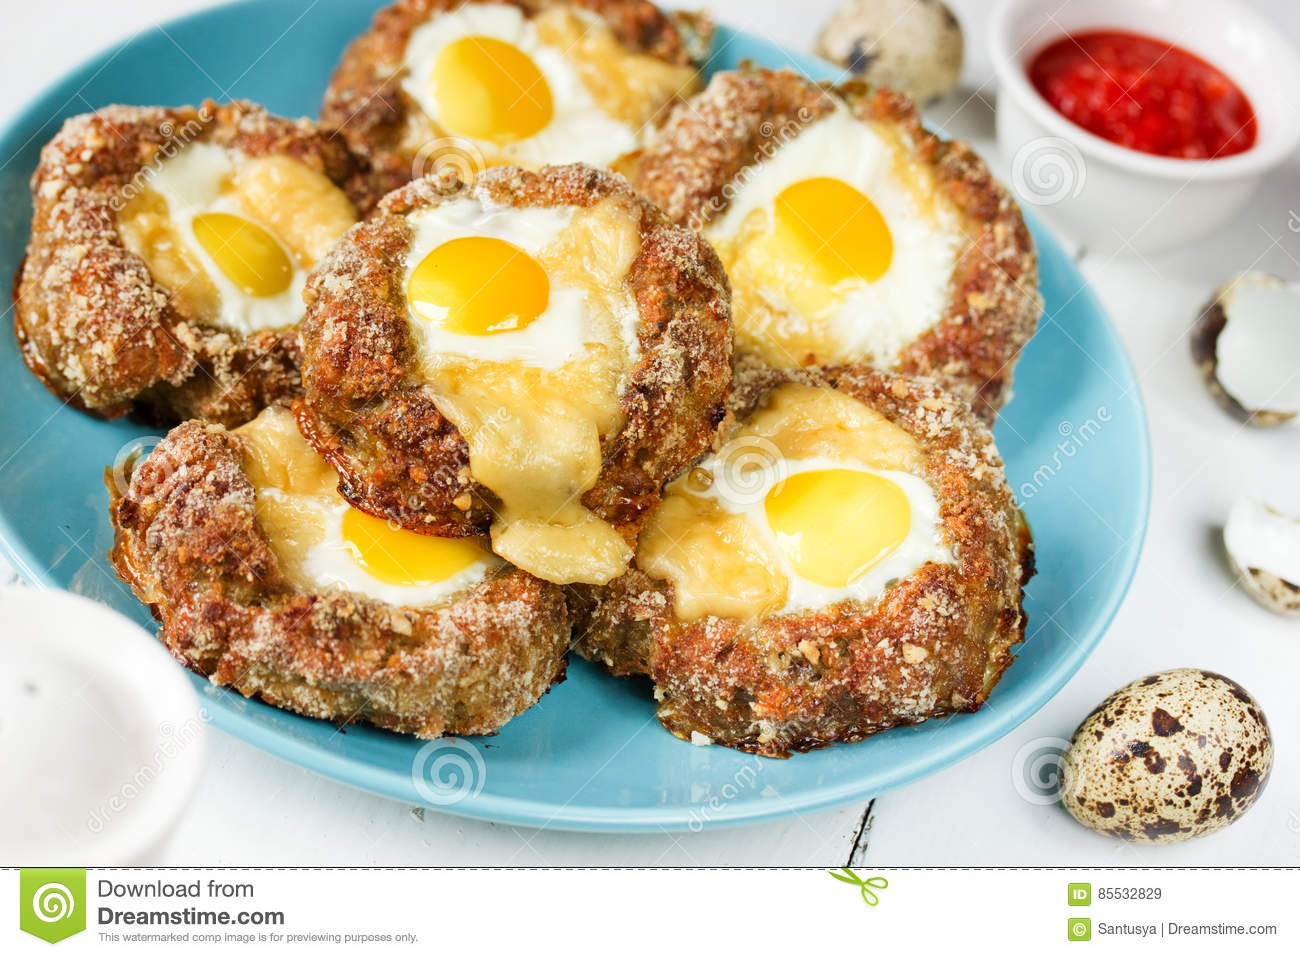 Bird nest easter recipe meat nests baked minced meat cutlet bird nest easter recipe meat nests baked minced meat cutlet stock image image of lunch child 85532829 forumfinder Image collections